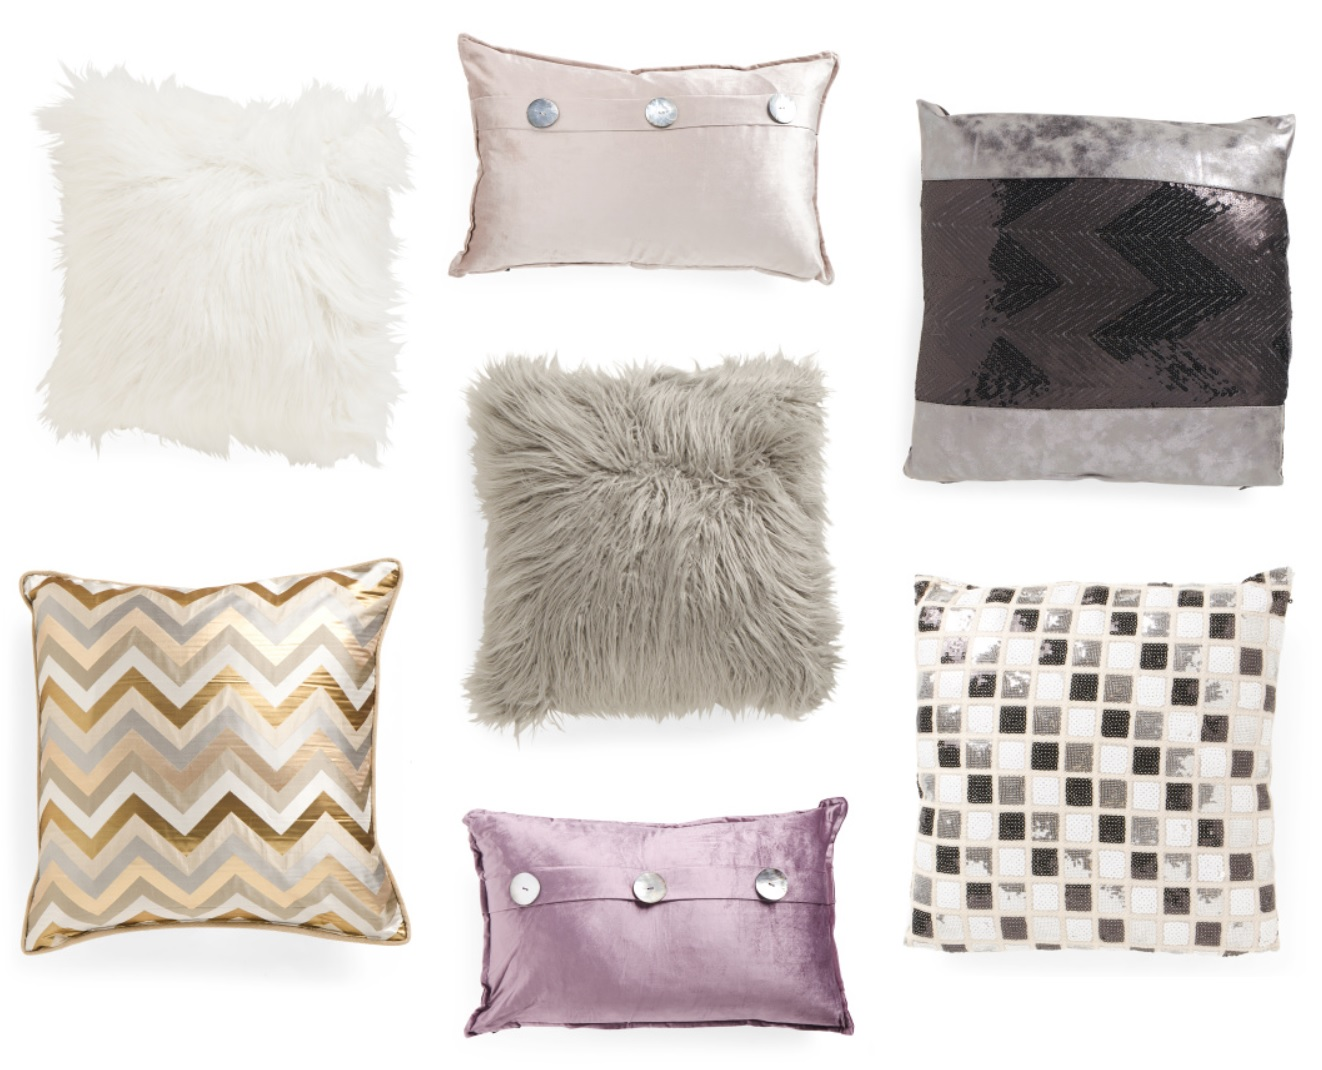 Domain Decorative Pillows Tj Maxx : TJ Maxx: Couch/Throw Pillows From $16.99 + Free Shipping Kollel Budget